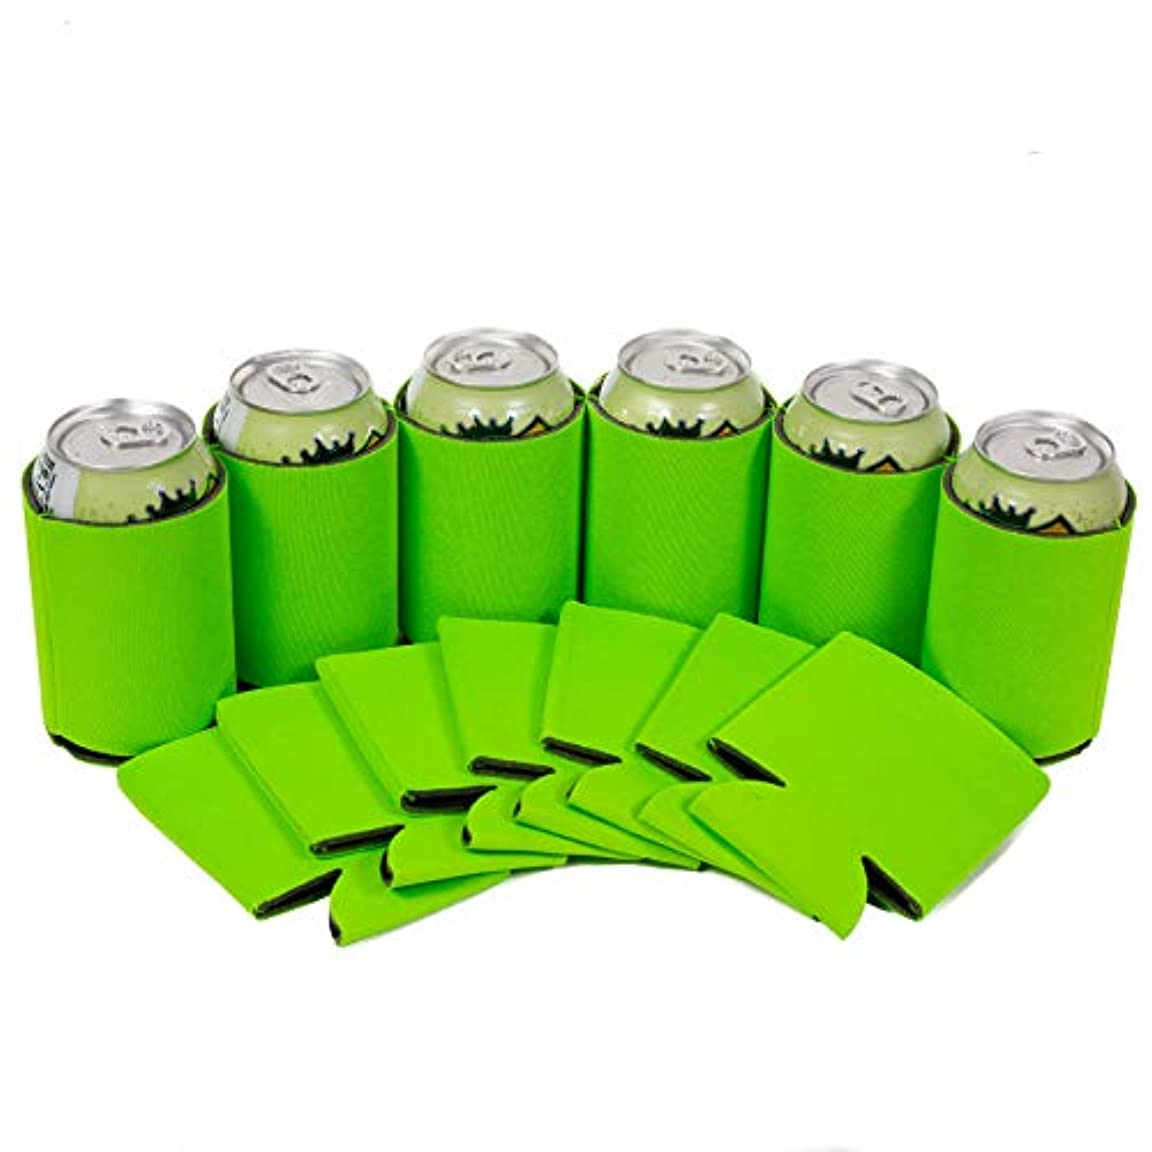 劣る森爆弾(12, Lime Green) - Premium Blank Can Coolers Sleeves Beer,Soft Drink - Can Insulators,Coolie Economy Bulk, Variety Of Colours and Sizes (12, Lime Green)